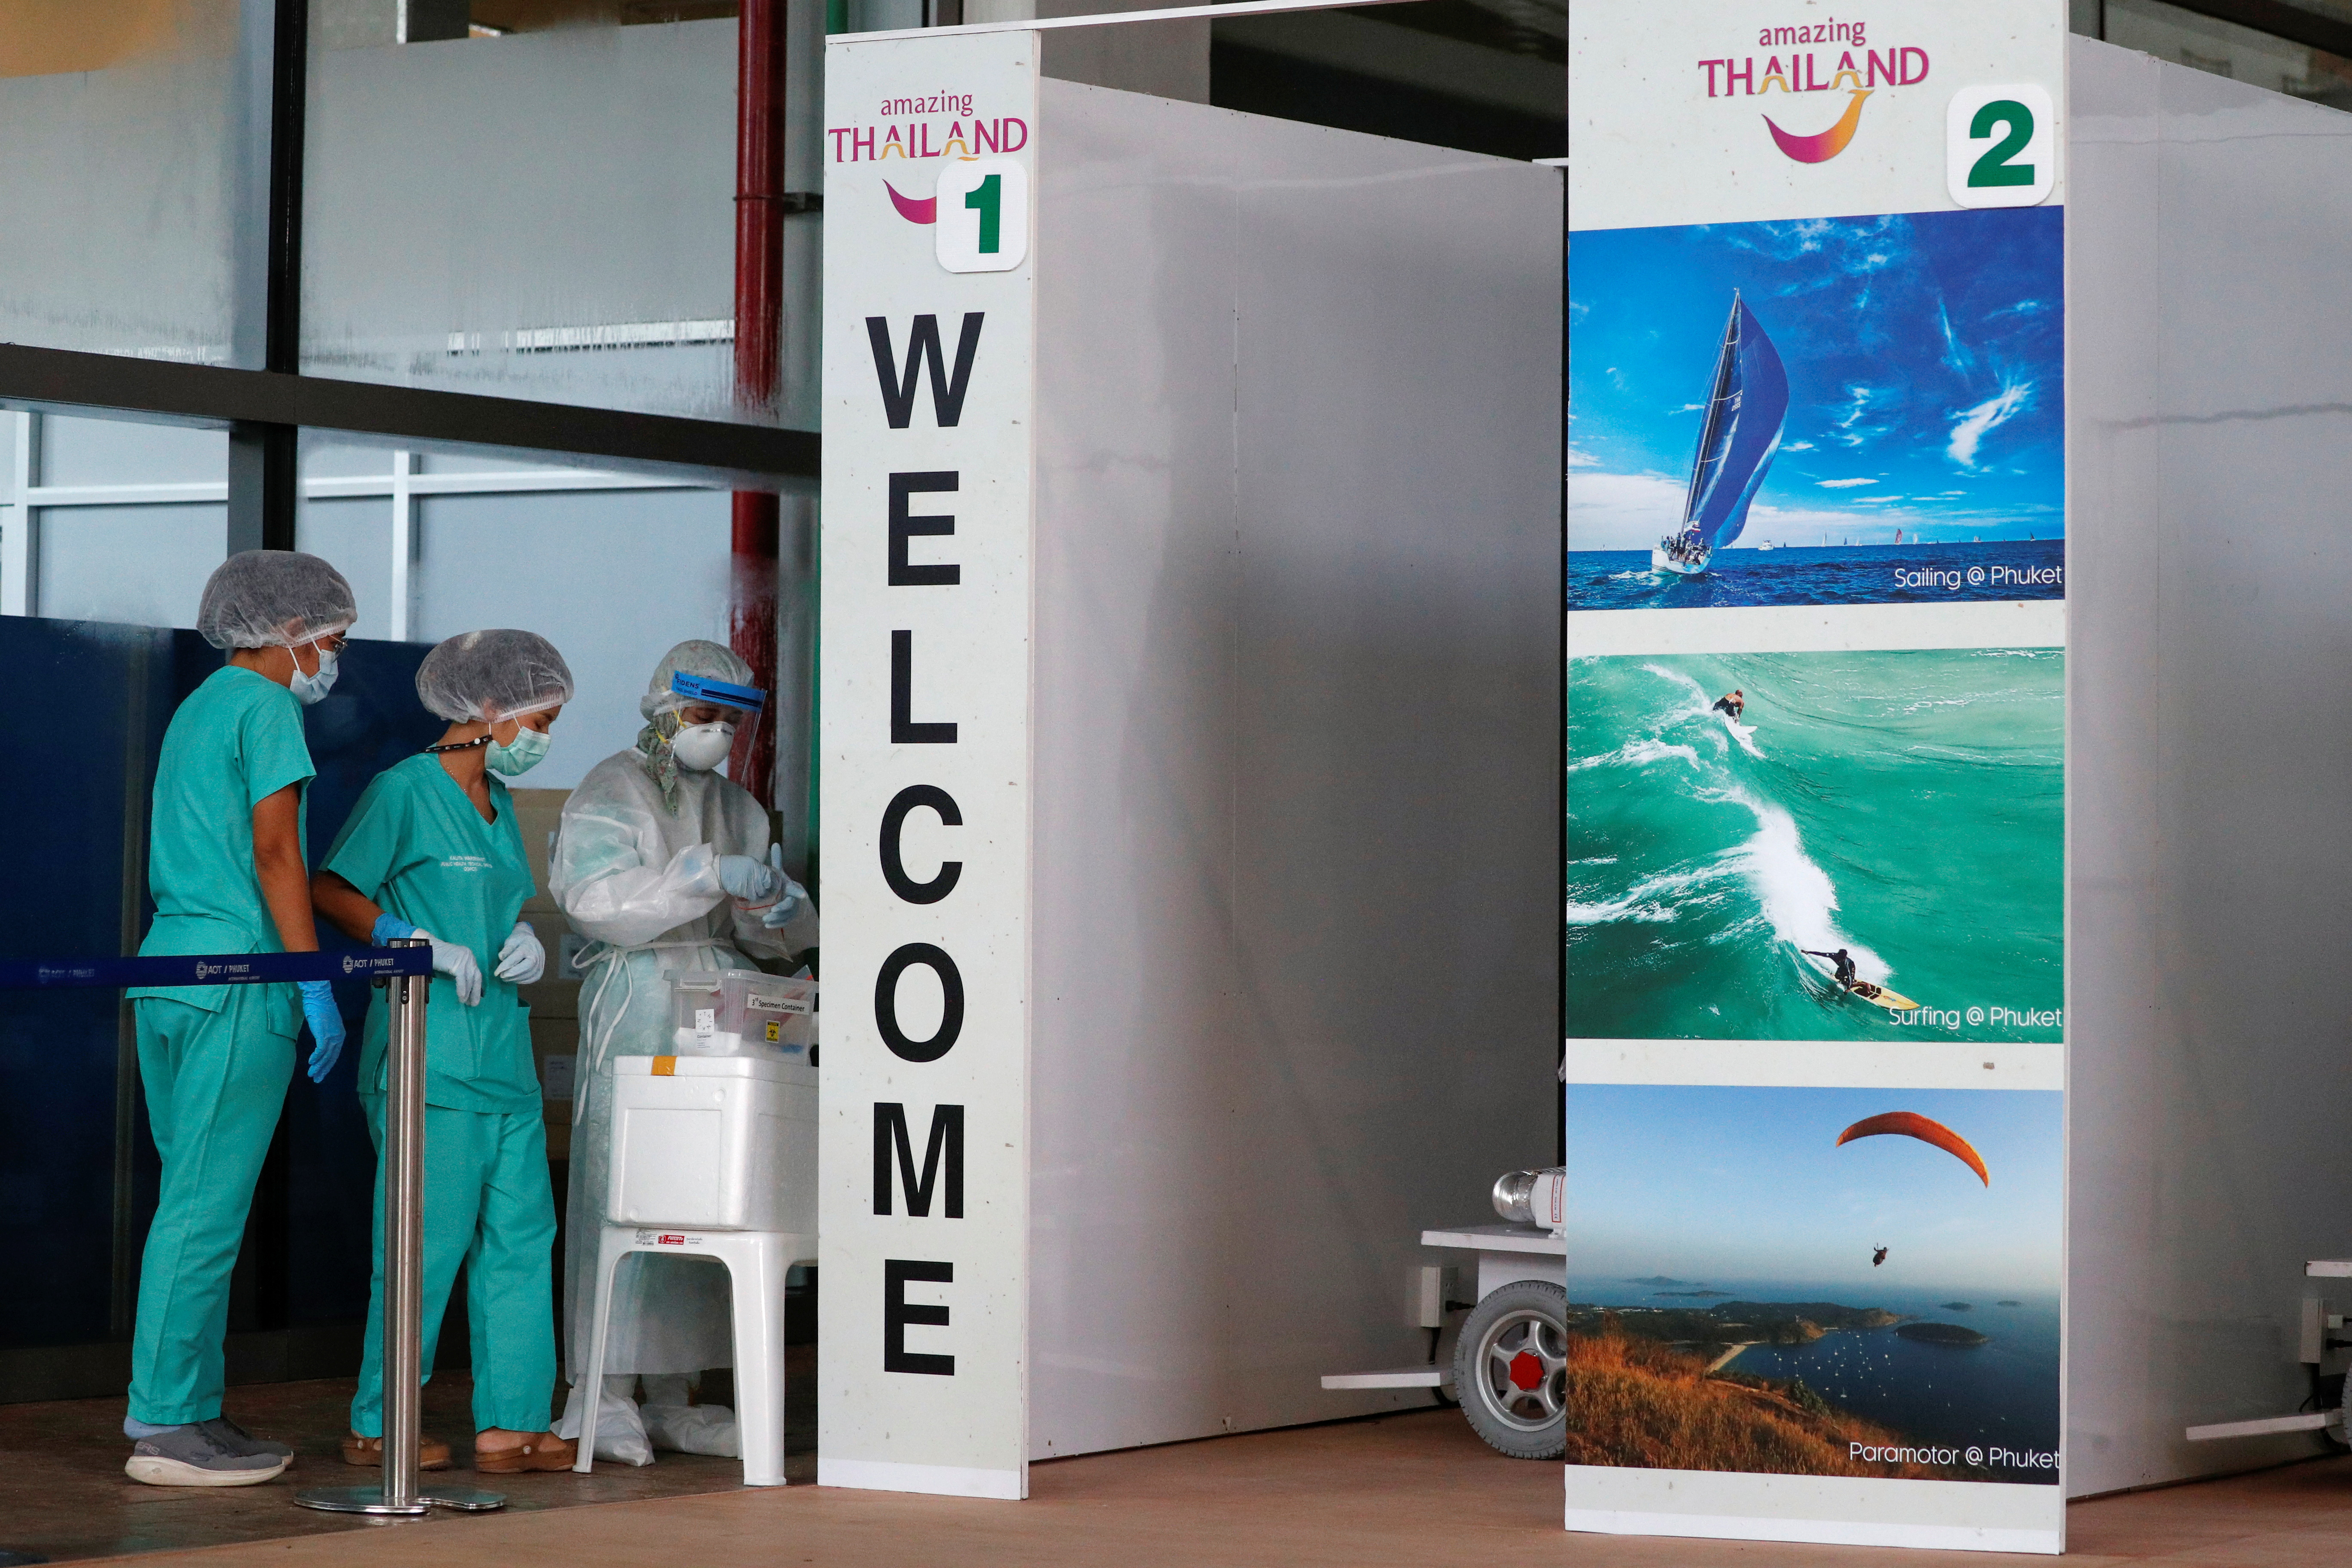 Health workers stand at the COVID-19 swab test area at the airport as Phuket reopens to overseas tourists, allowing foreigners fully vaccinated against the coronavirus disease (COVID-19) to visit the resort island without quarantine, in Phuket, Thailand July 1, 2021. REUTERS/Jorge Silva